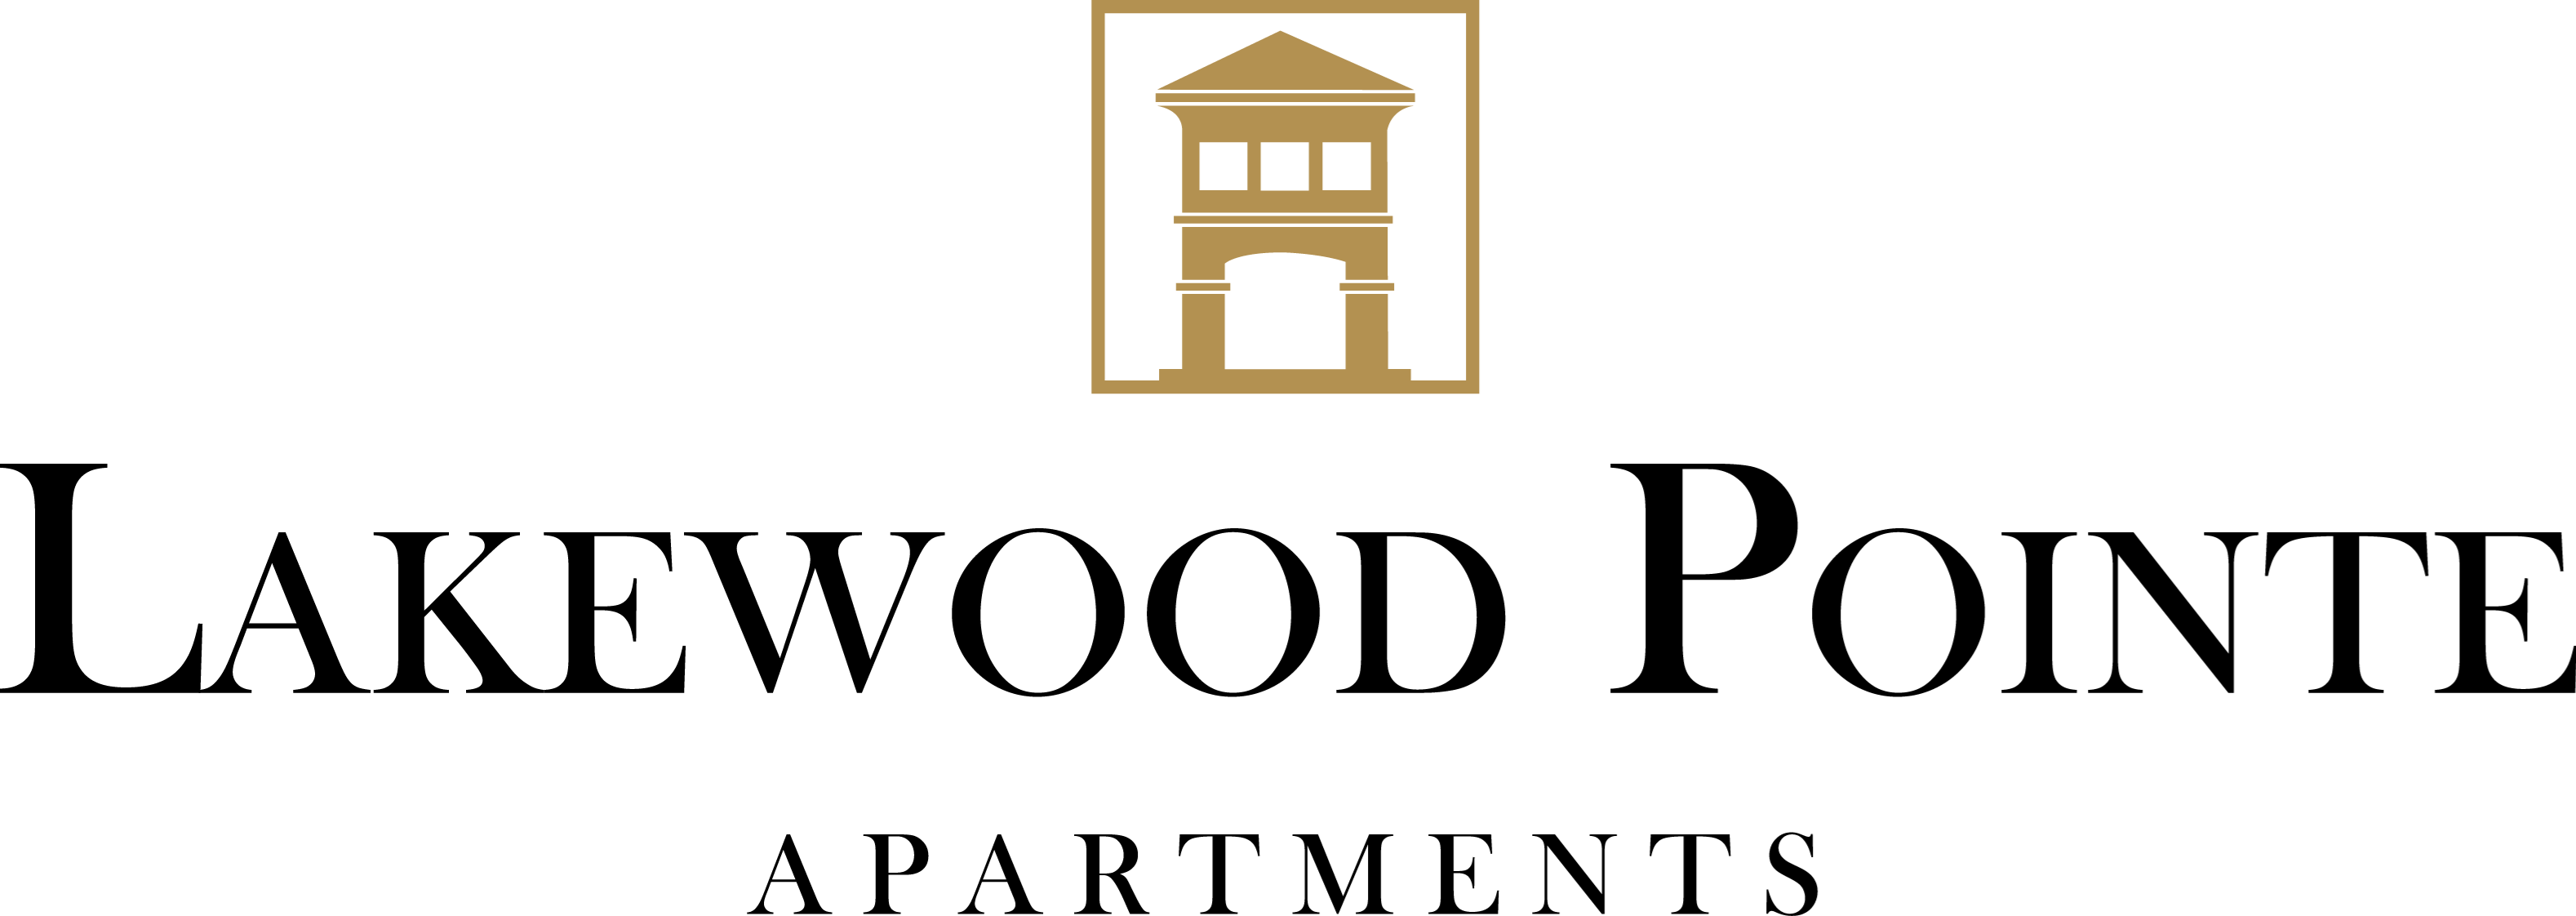 Lakewood Pointe Property Logo 25